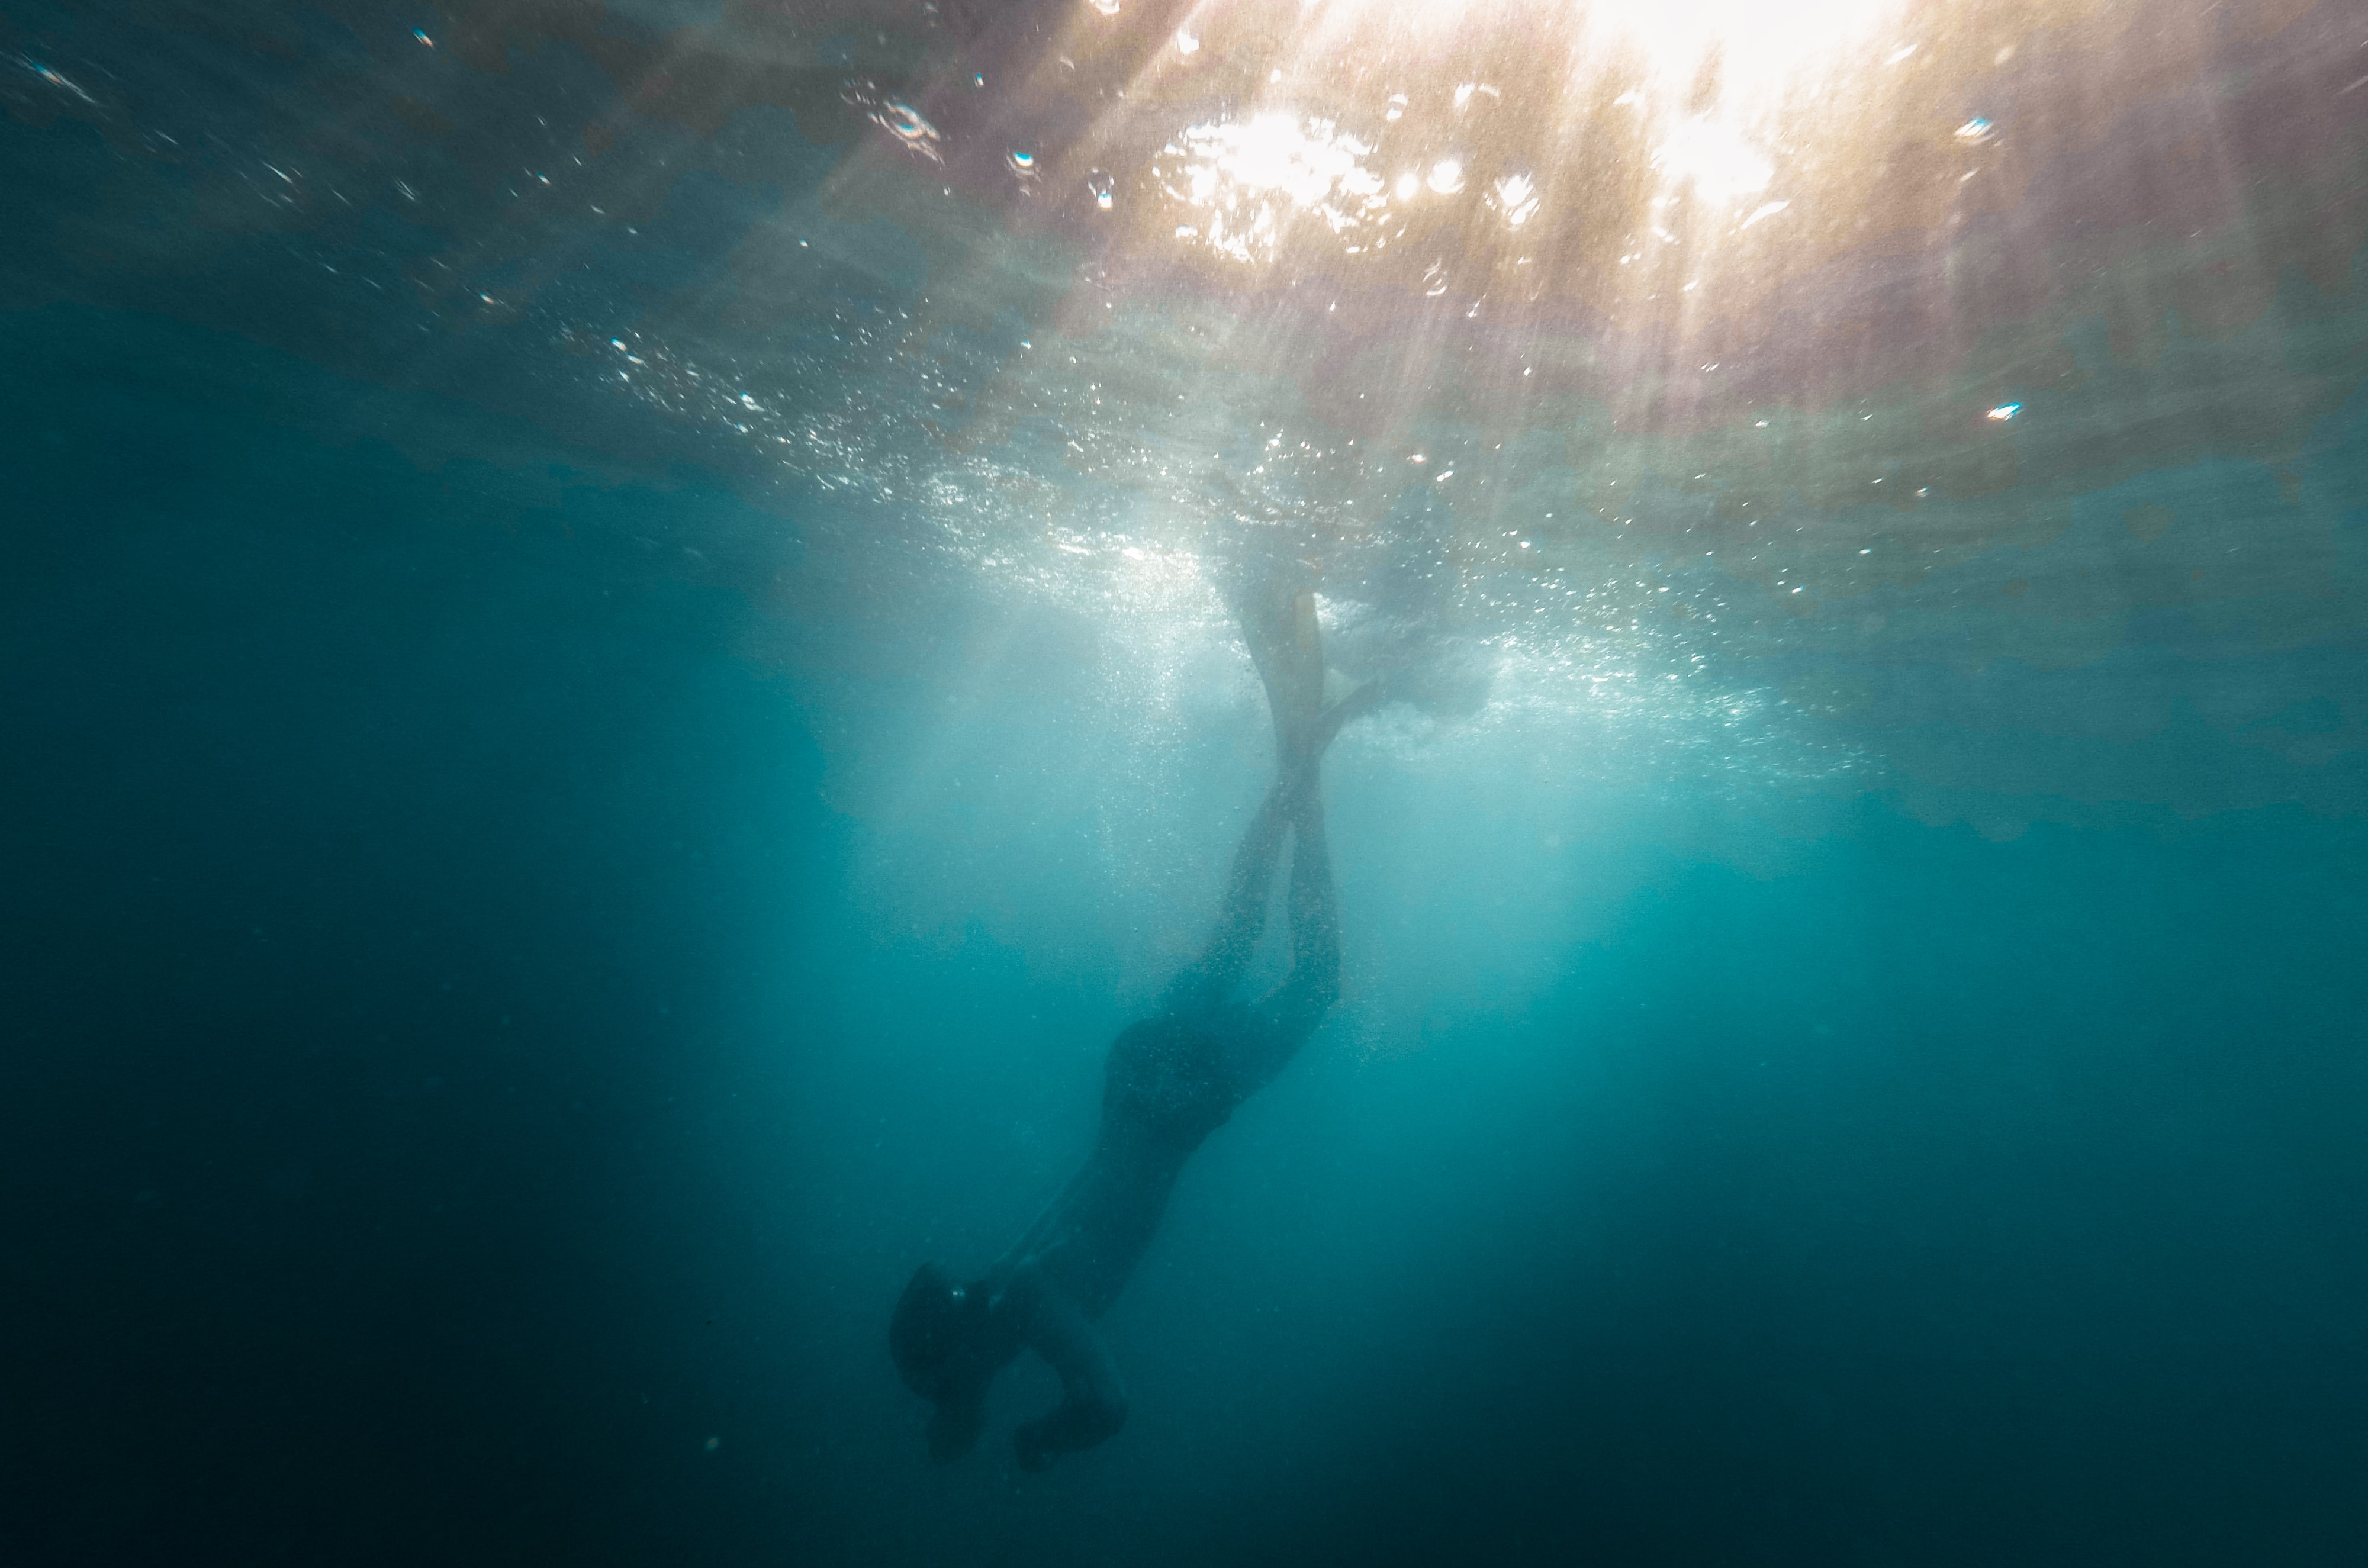 underwater photo of person diving